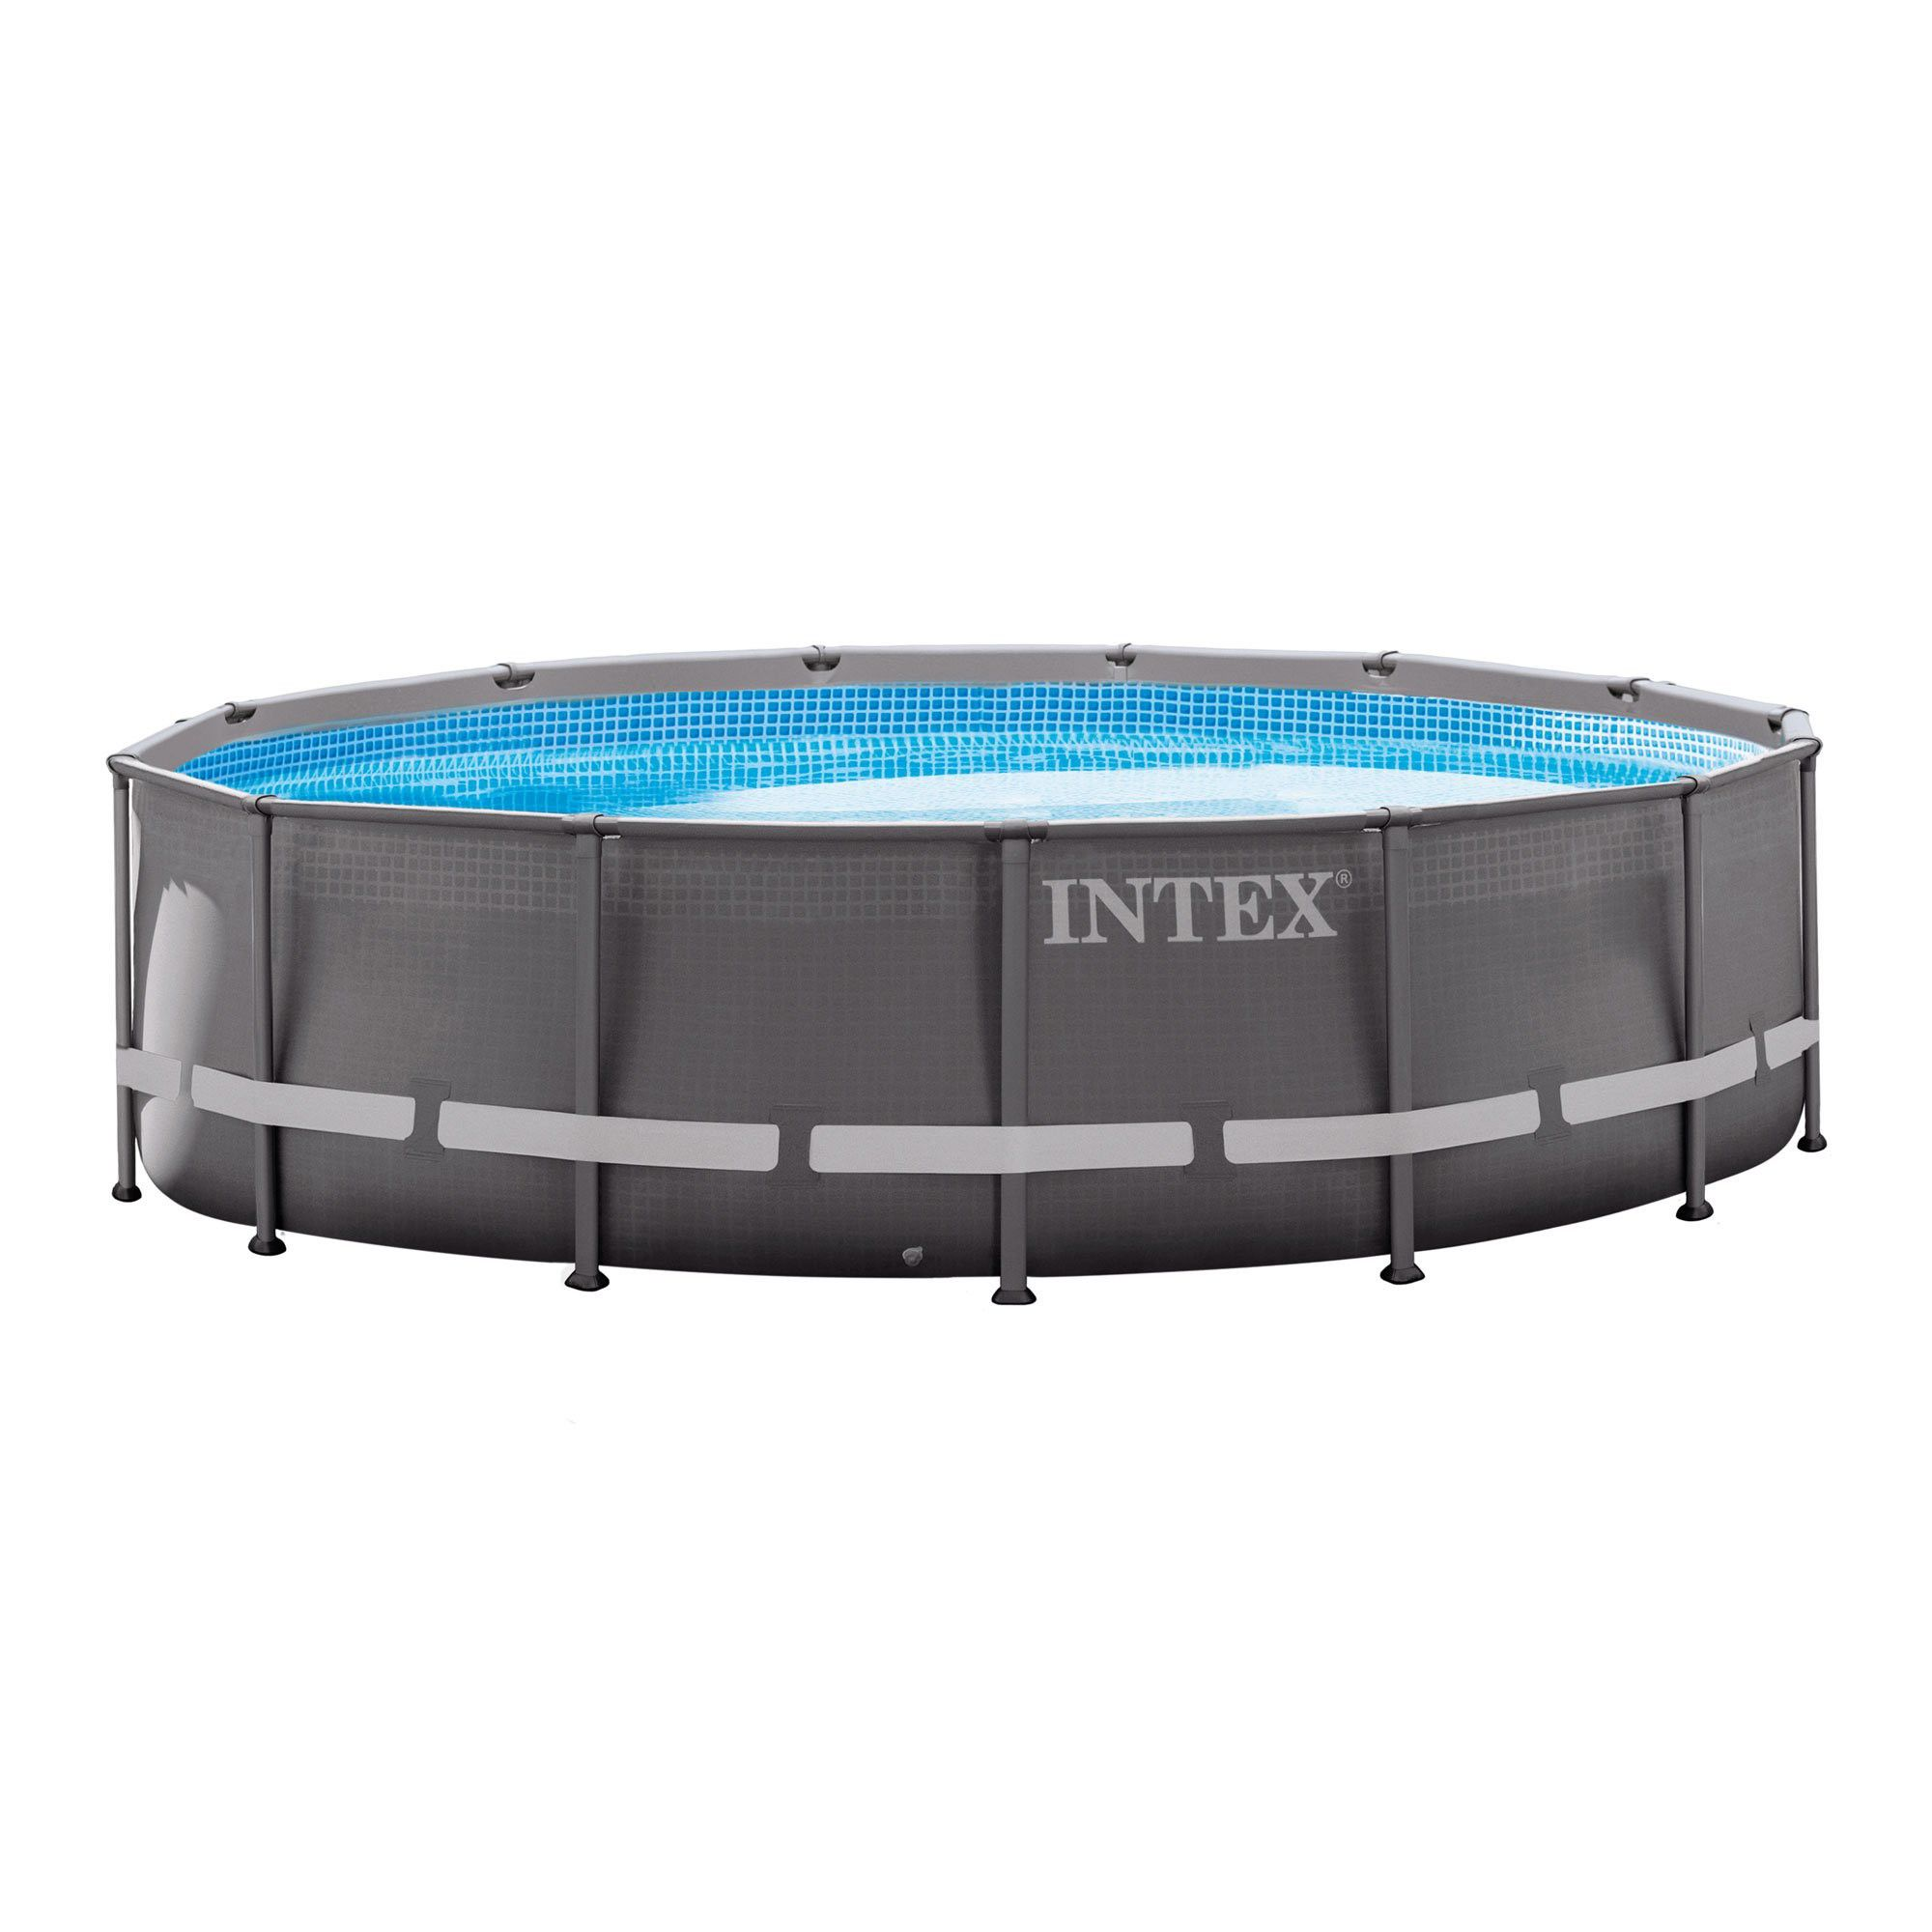 Pool Zubehör Intex Intex 14 X 42 Ultra Frame Above Ground Swimming Pool Set With